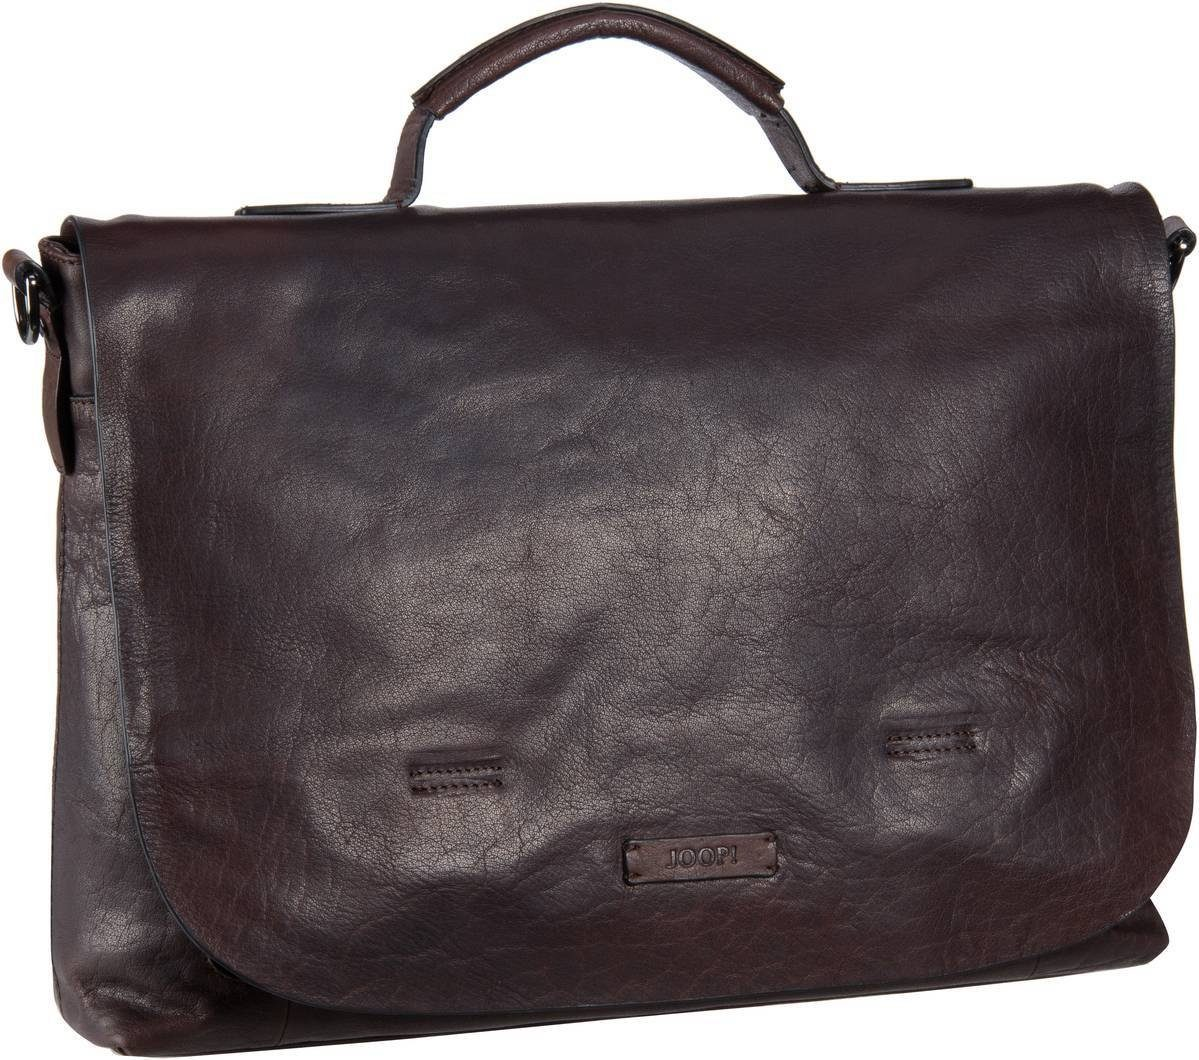 Joop Minowa Kreon Brief Bag